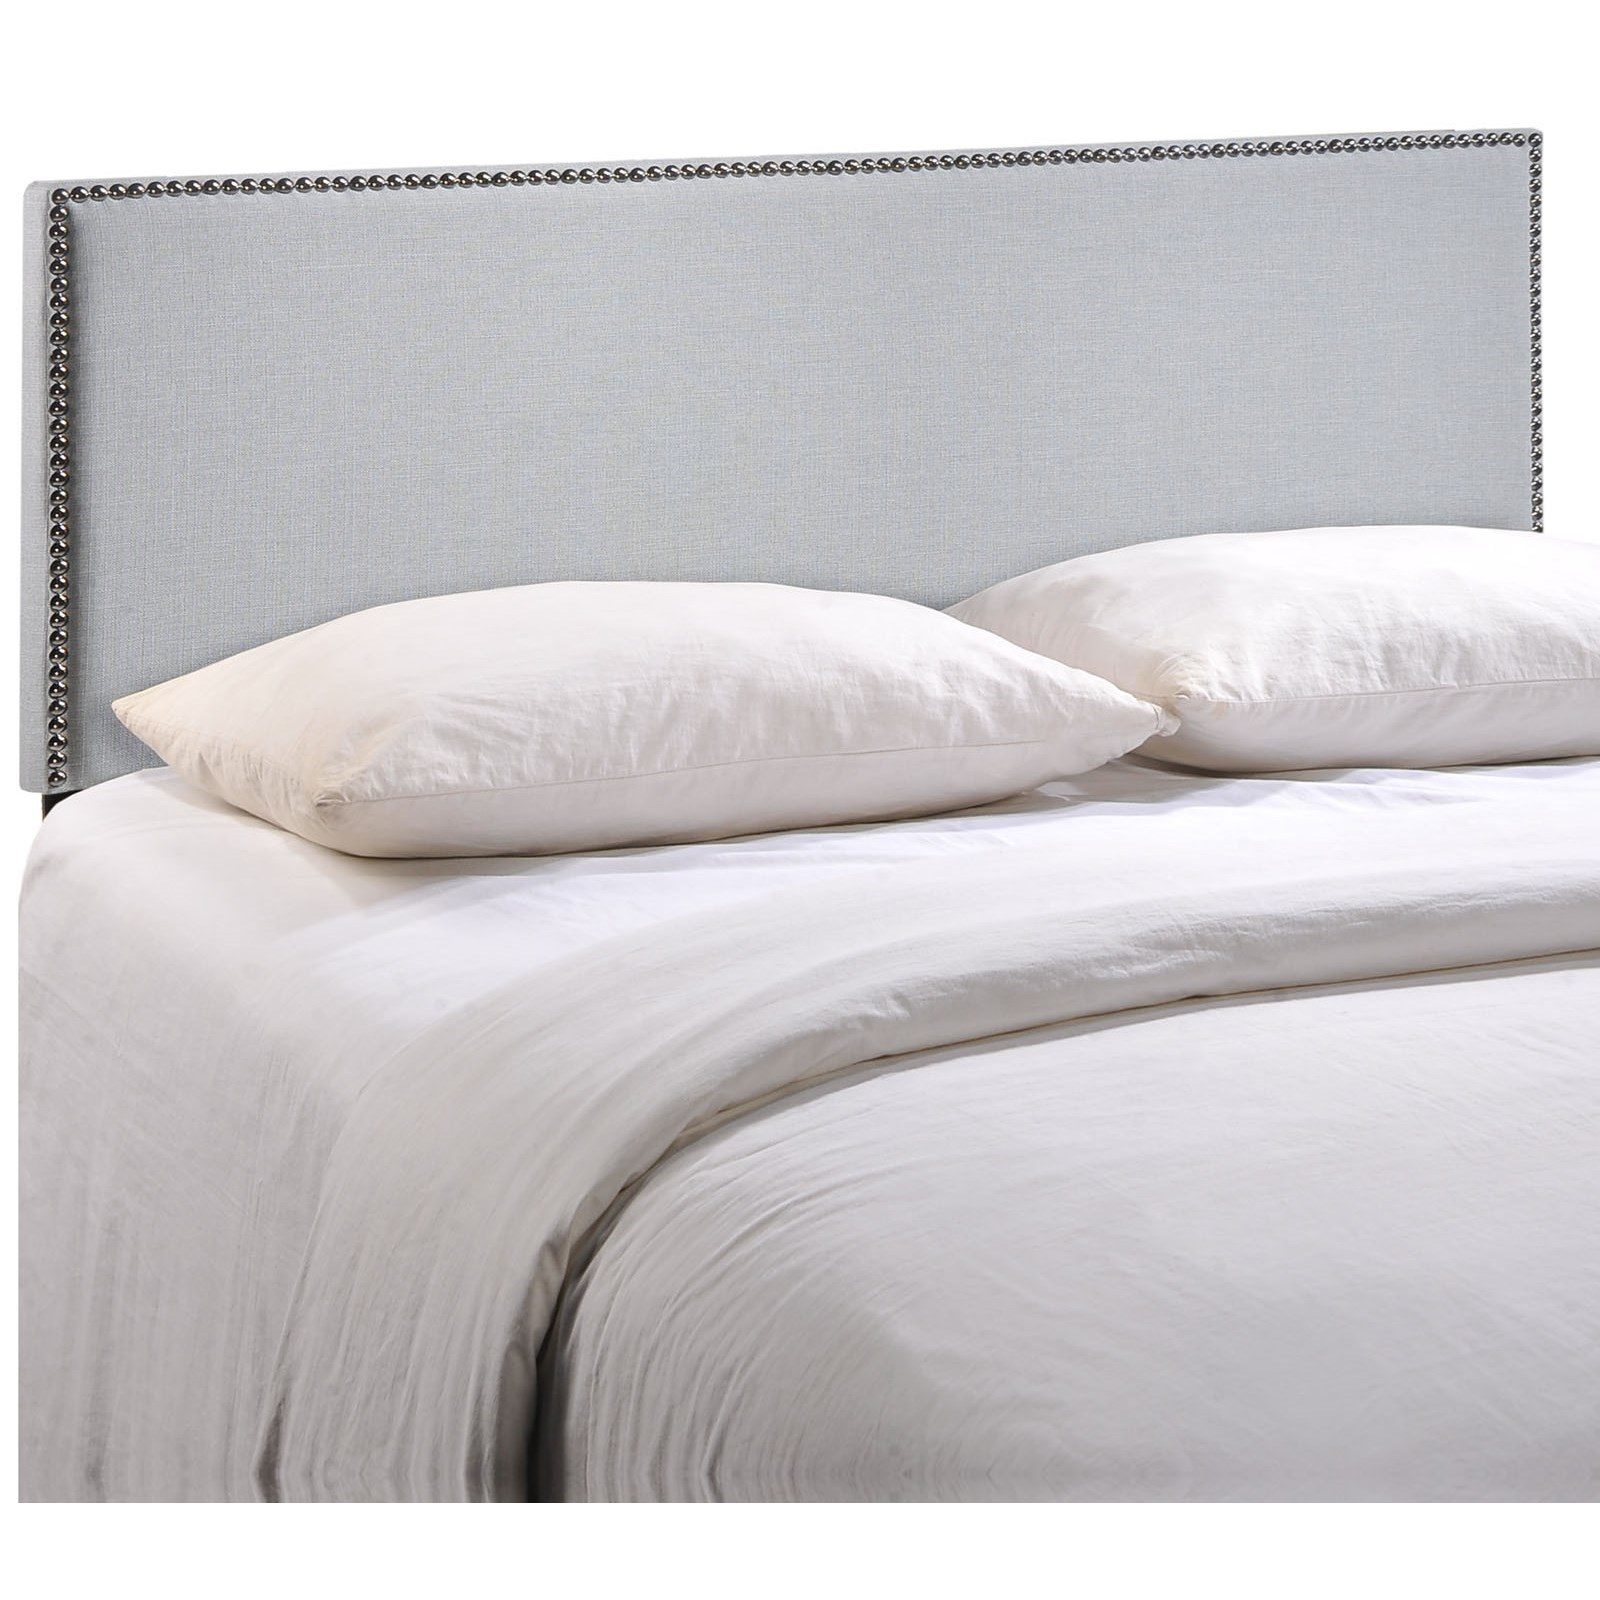 Region King Nailhead Upholstered Headboard by Modway at Value City Furniture